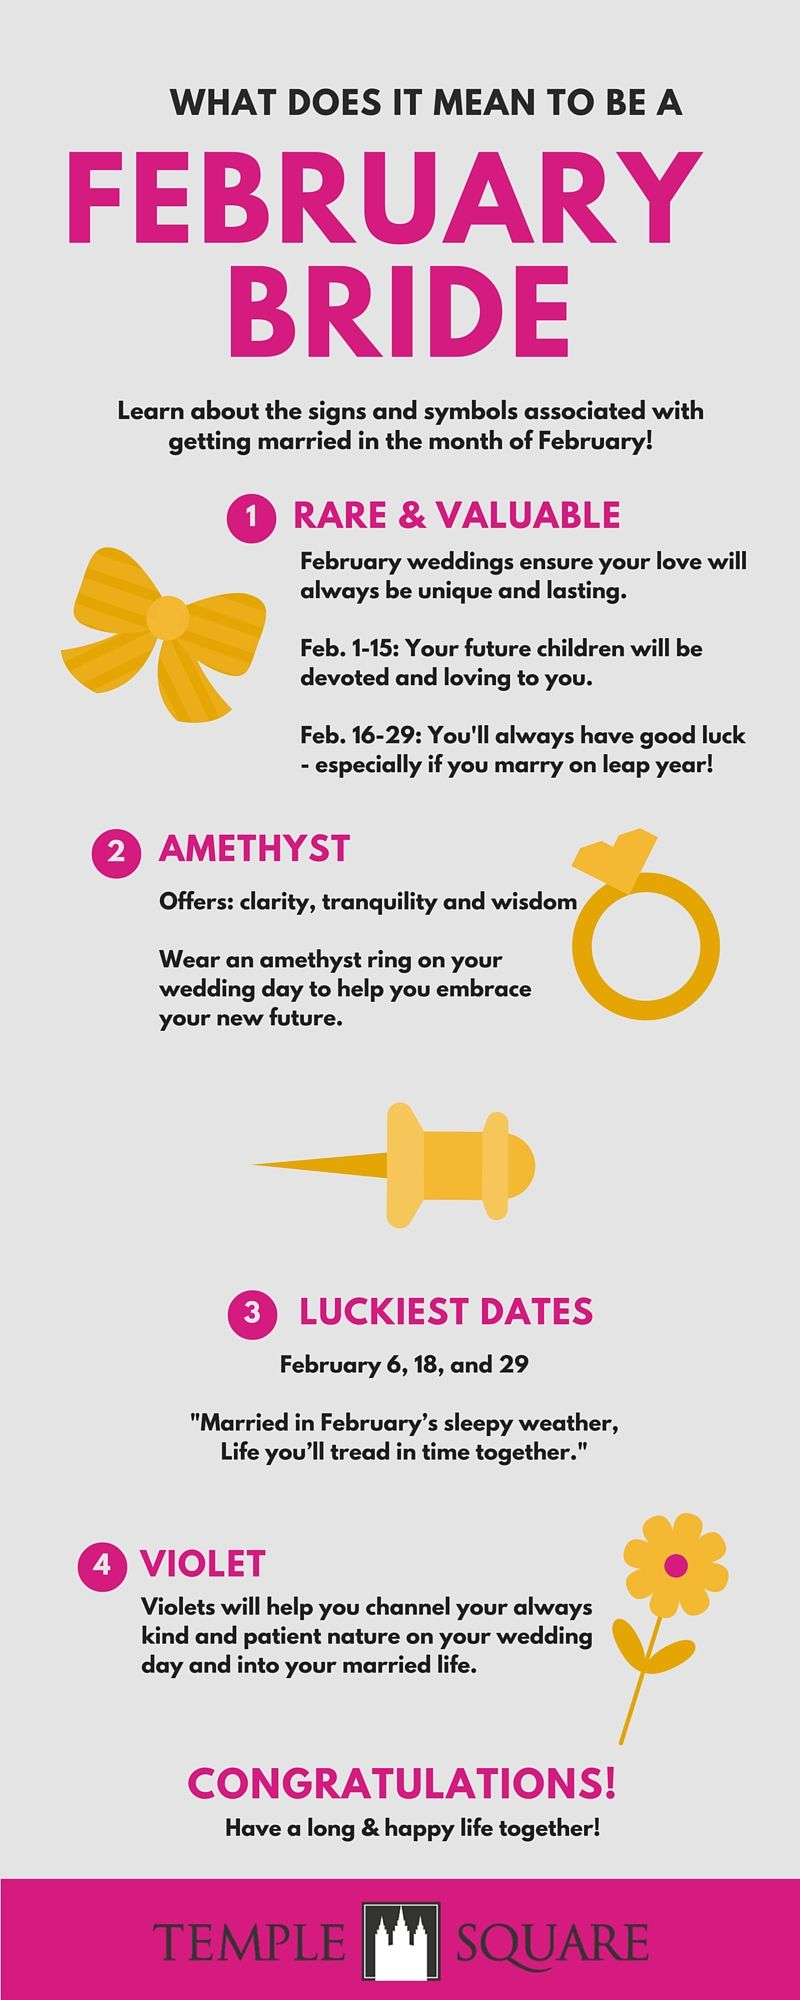 Interesting facts and signs about a leap year